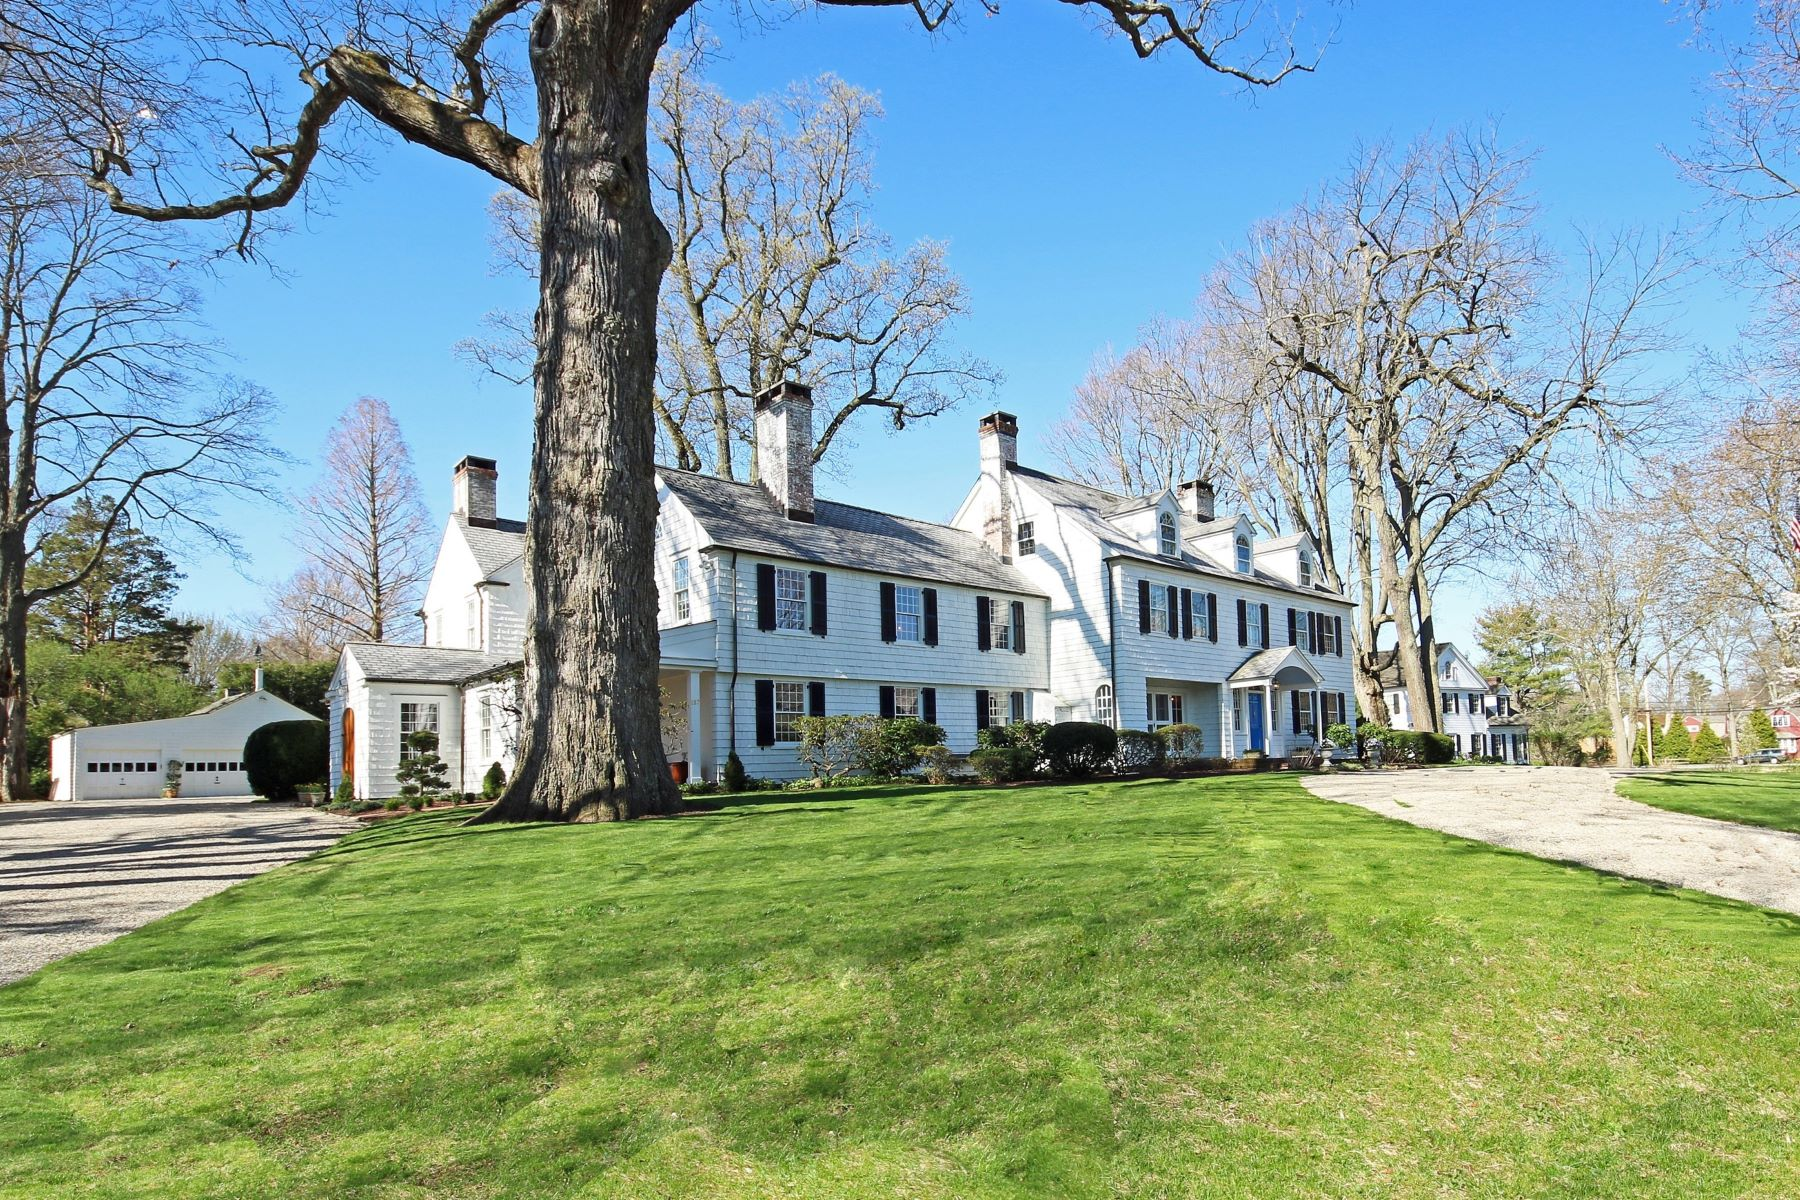 Single Family Home for Sale at Exceptional Southport Landmark 187 Westway Road Fairfield, Connecticut 06890 United States